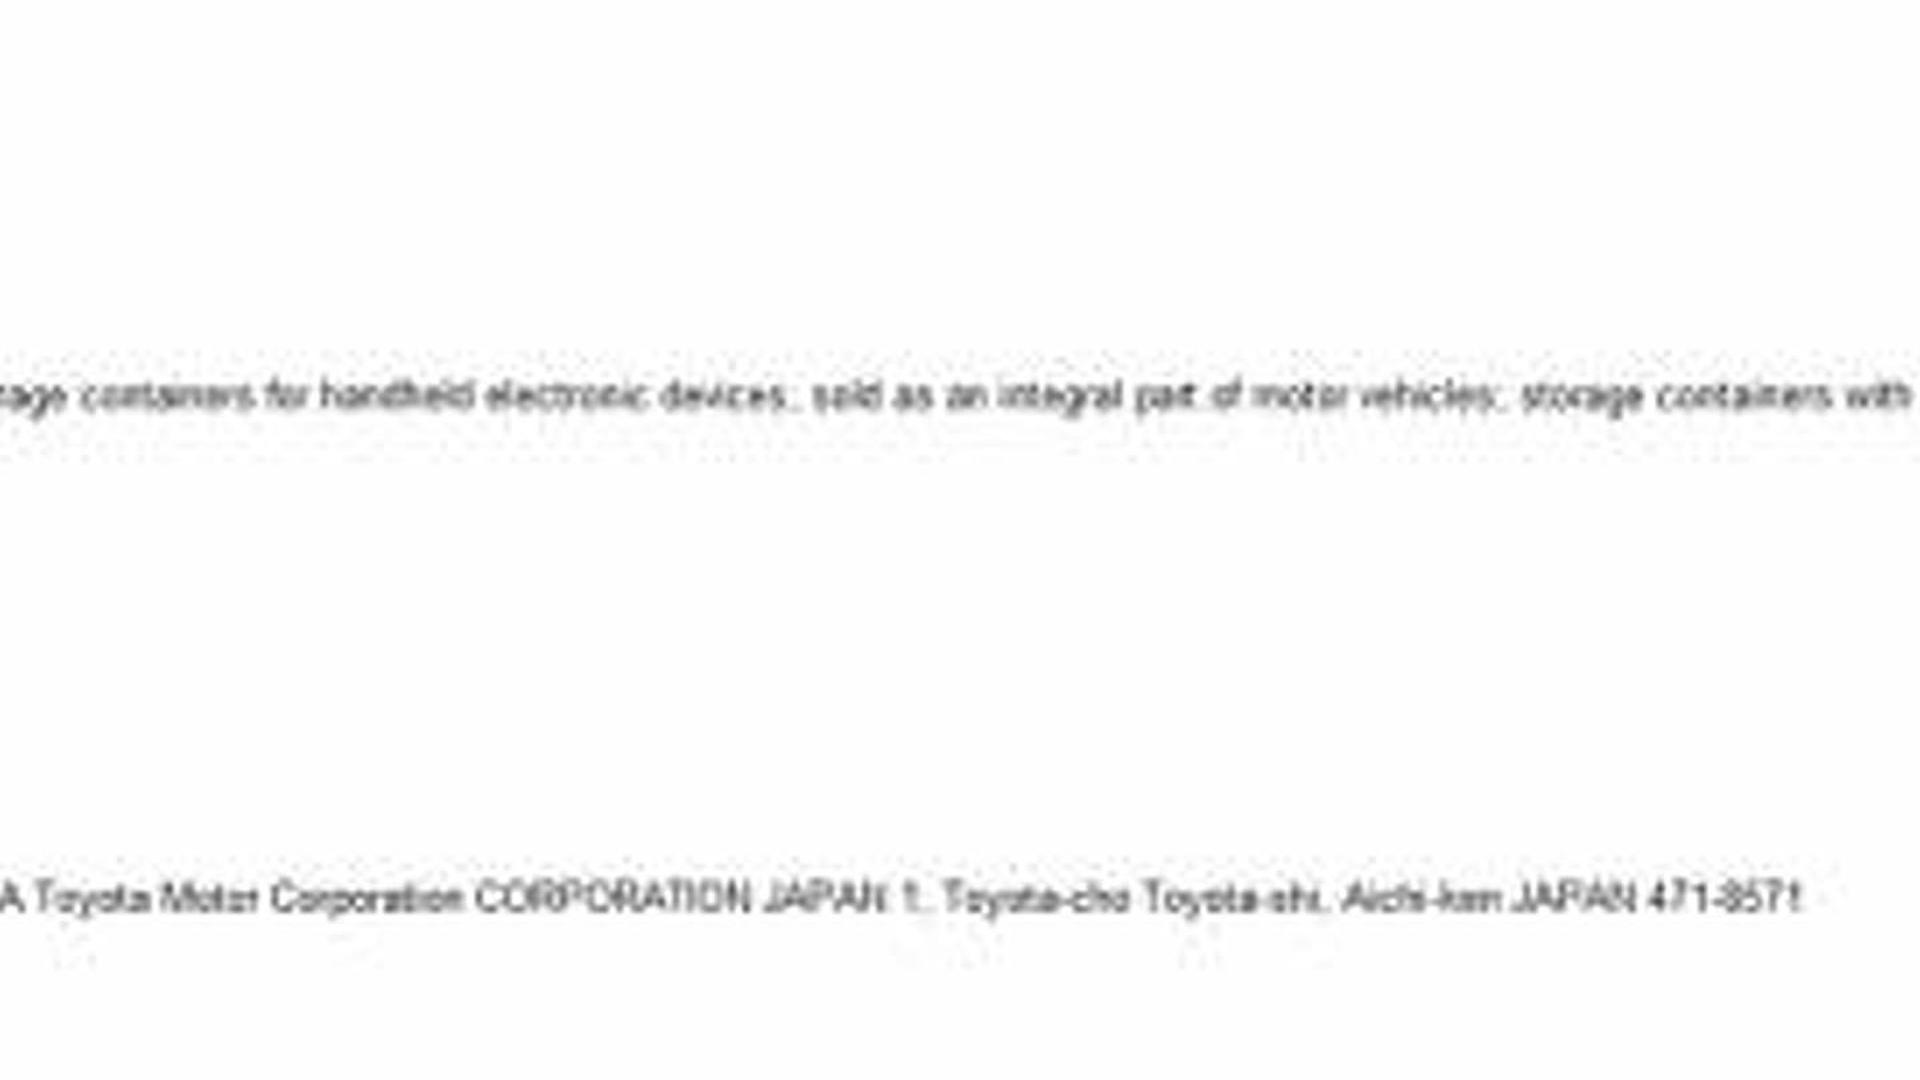 Toyota planning digital dashboards and inductive phone chargers?